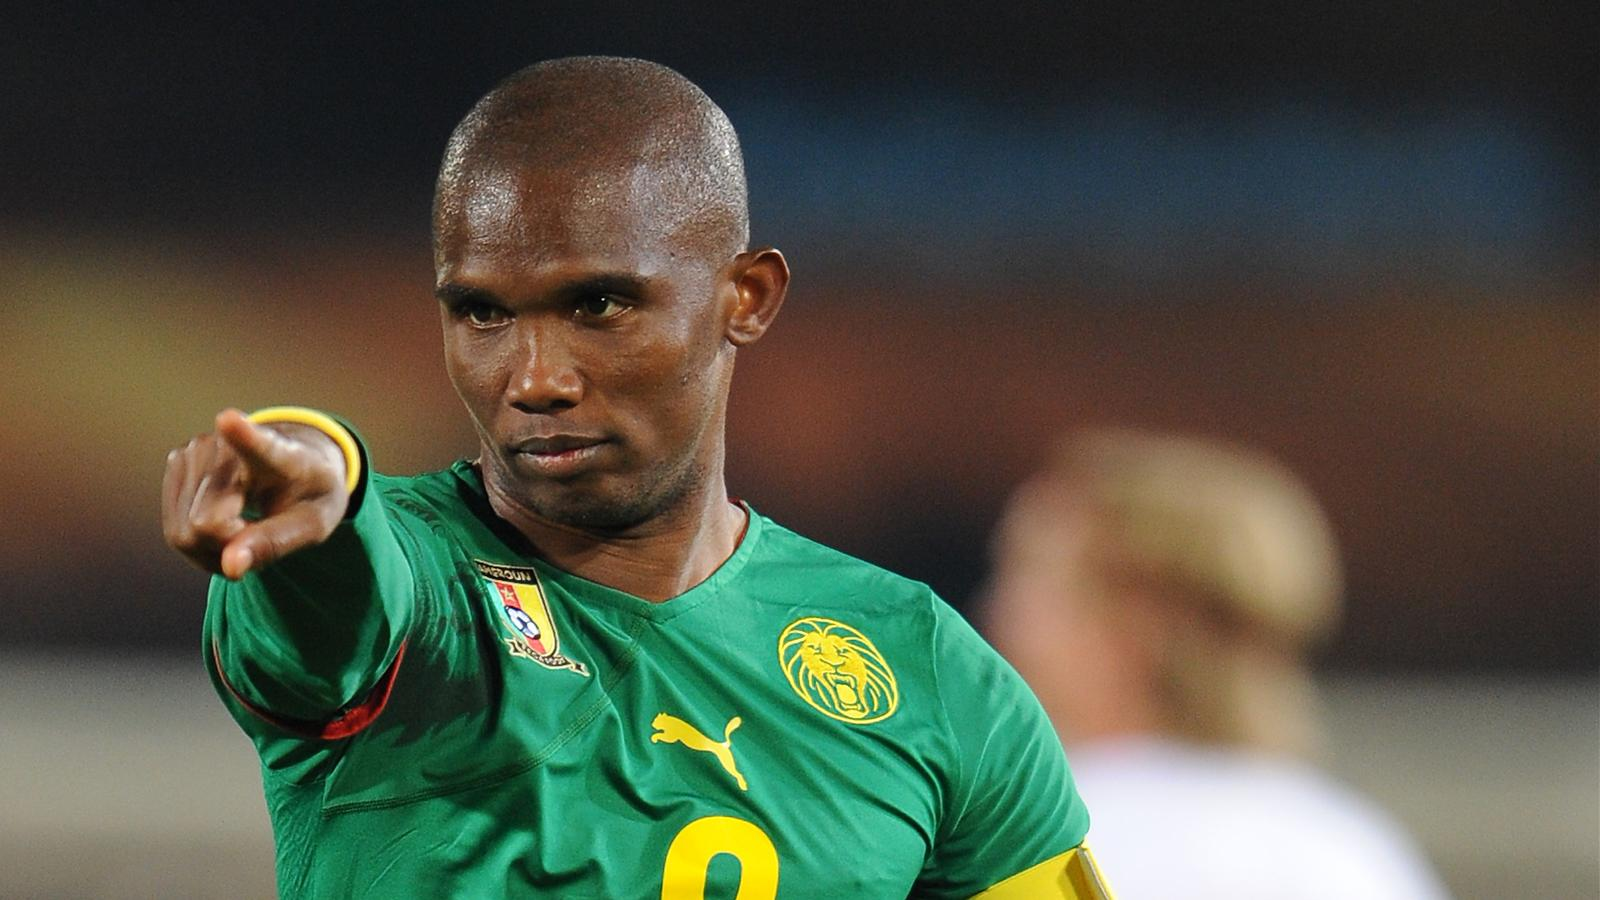 Samuel Eto'o Cameroun football player